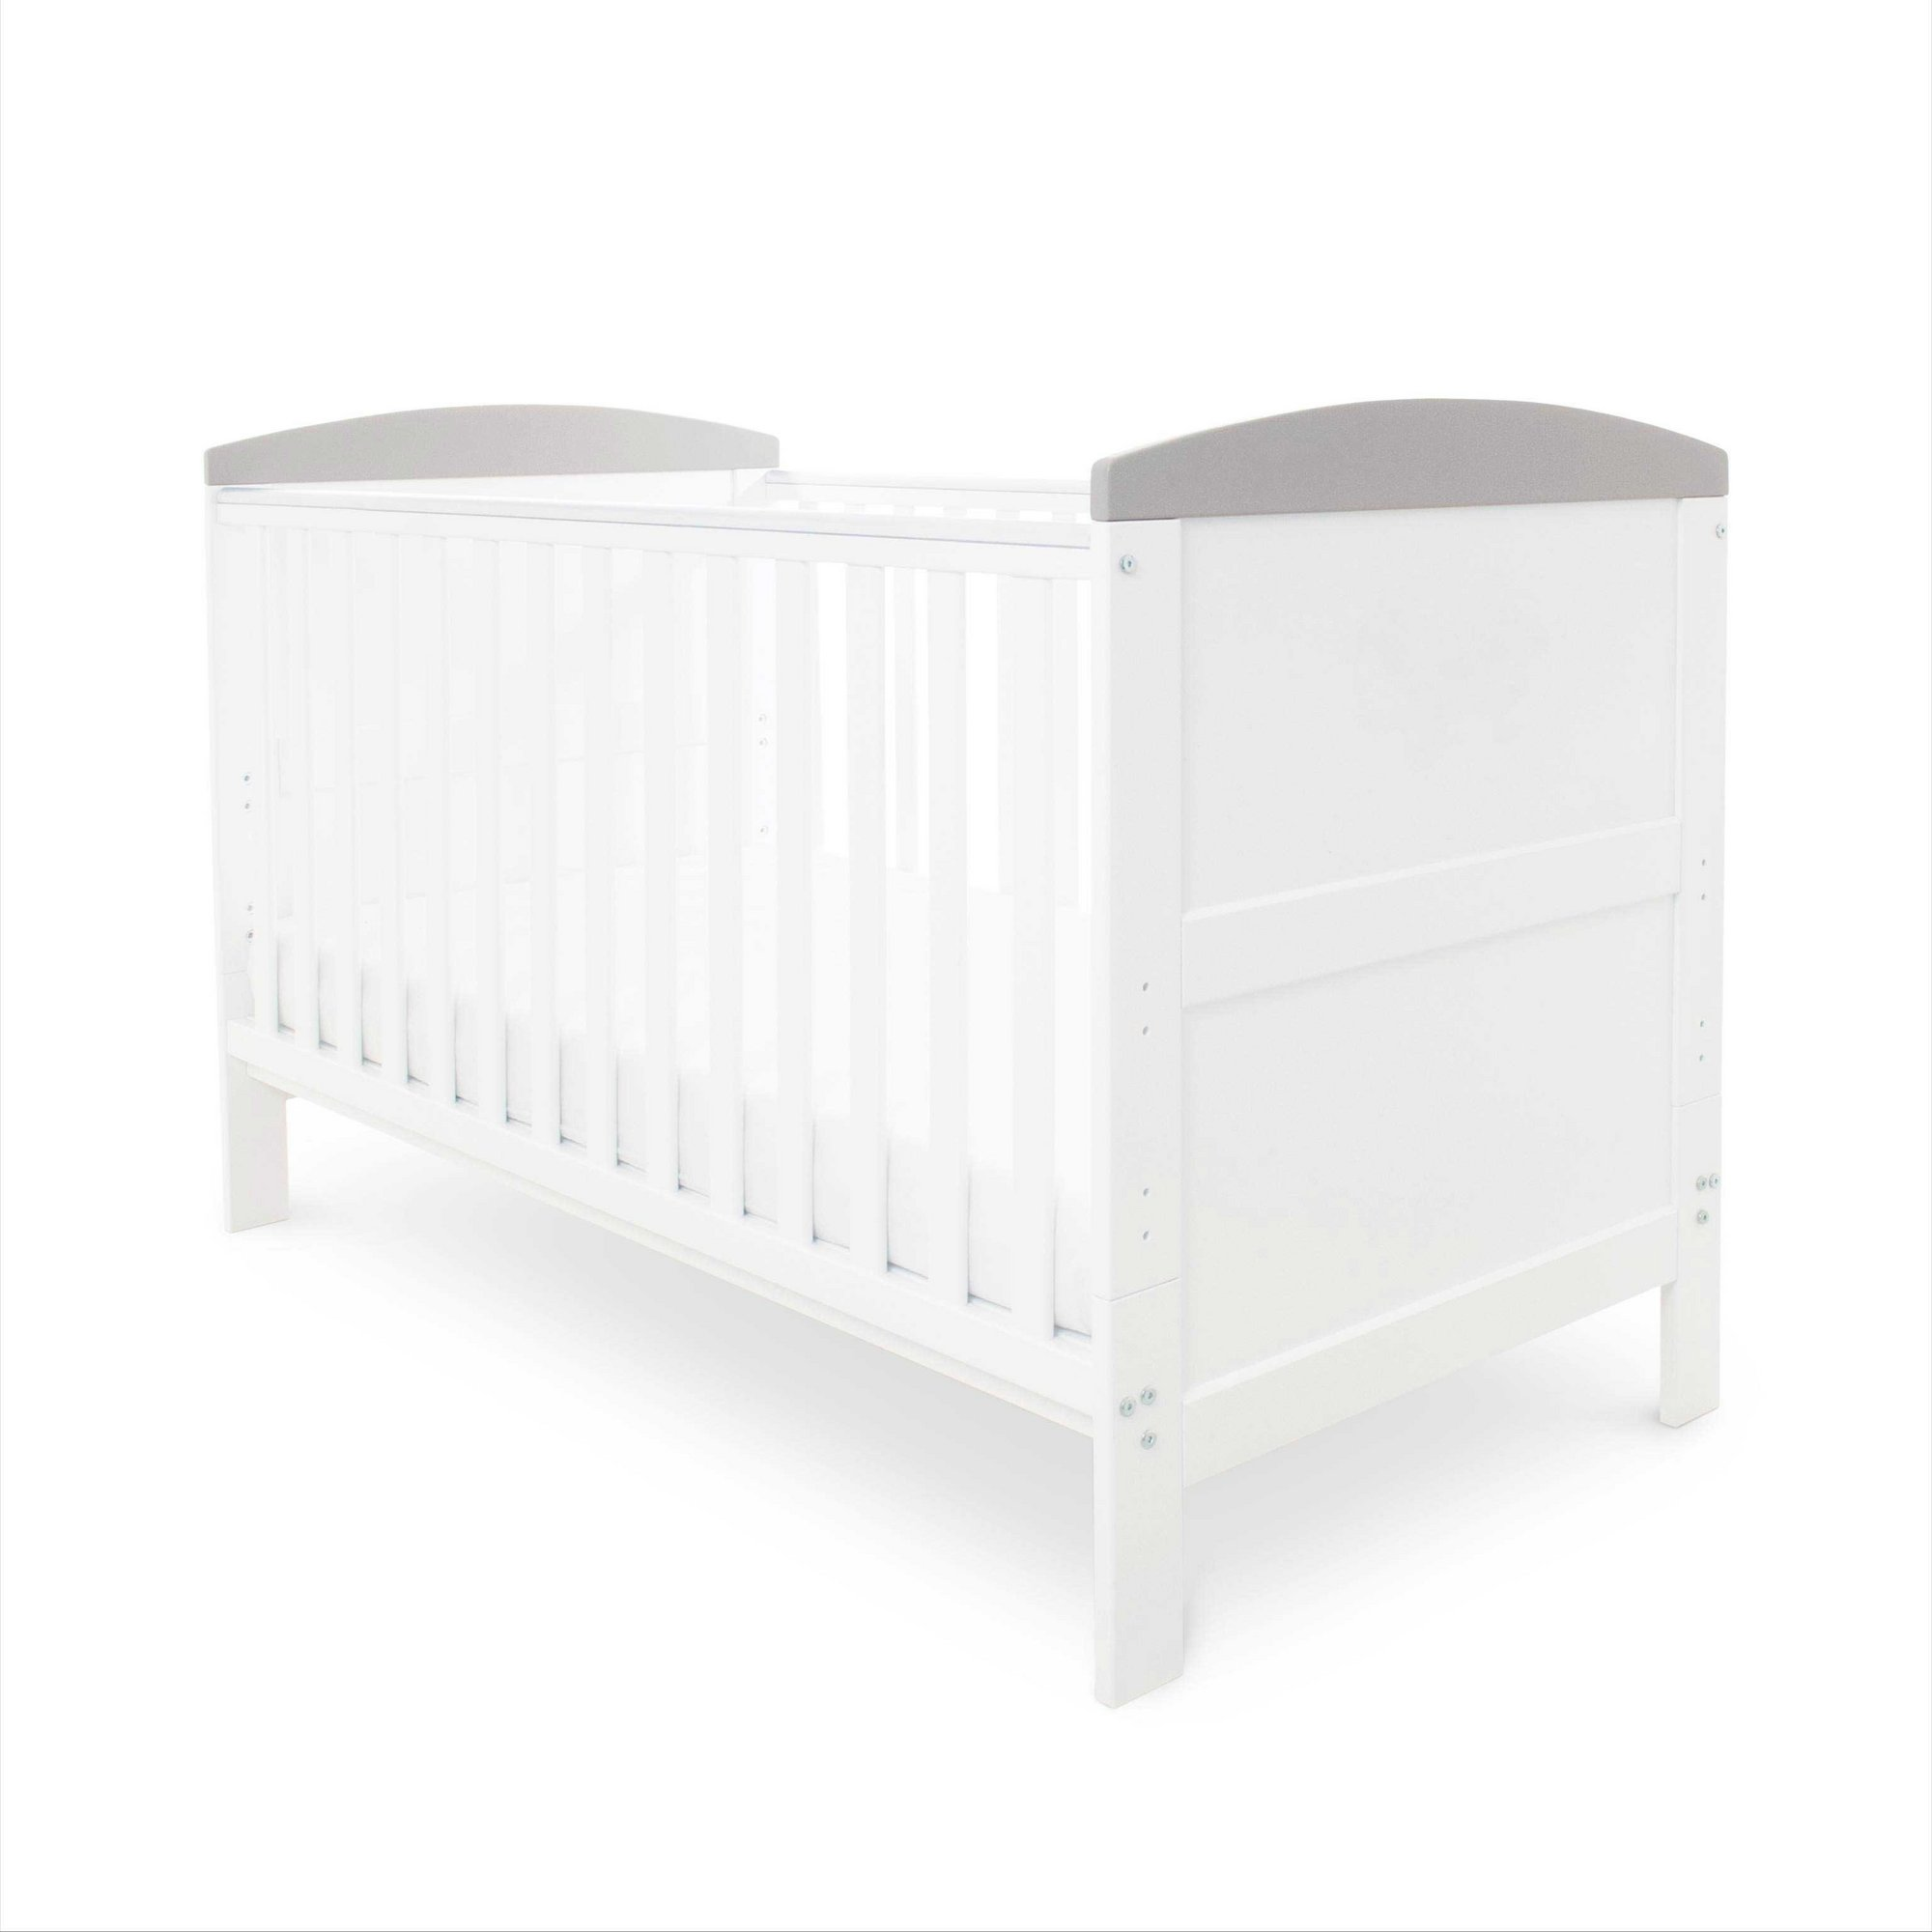 Image of Coleby Cot Bed Inc. Pocket Sprung Mattress - White with Grey Trim